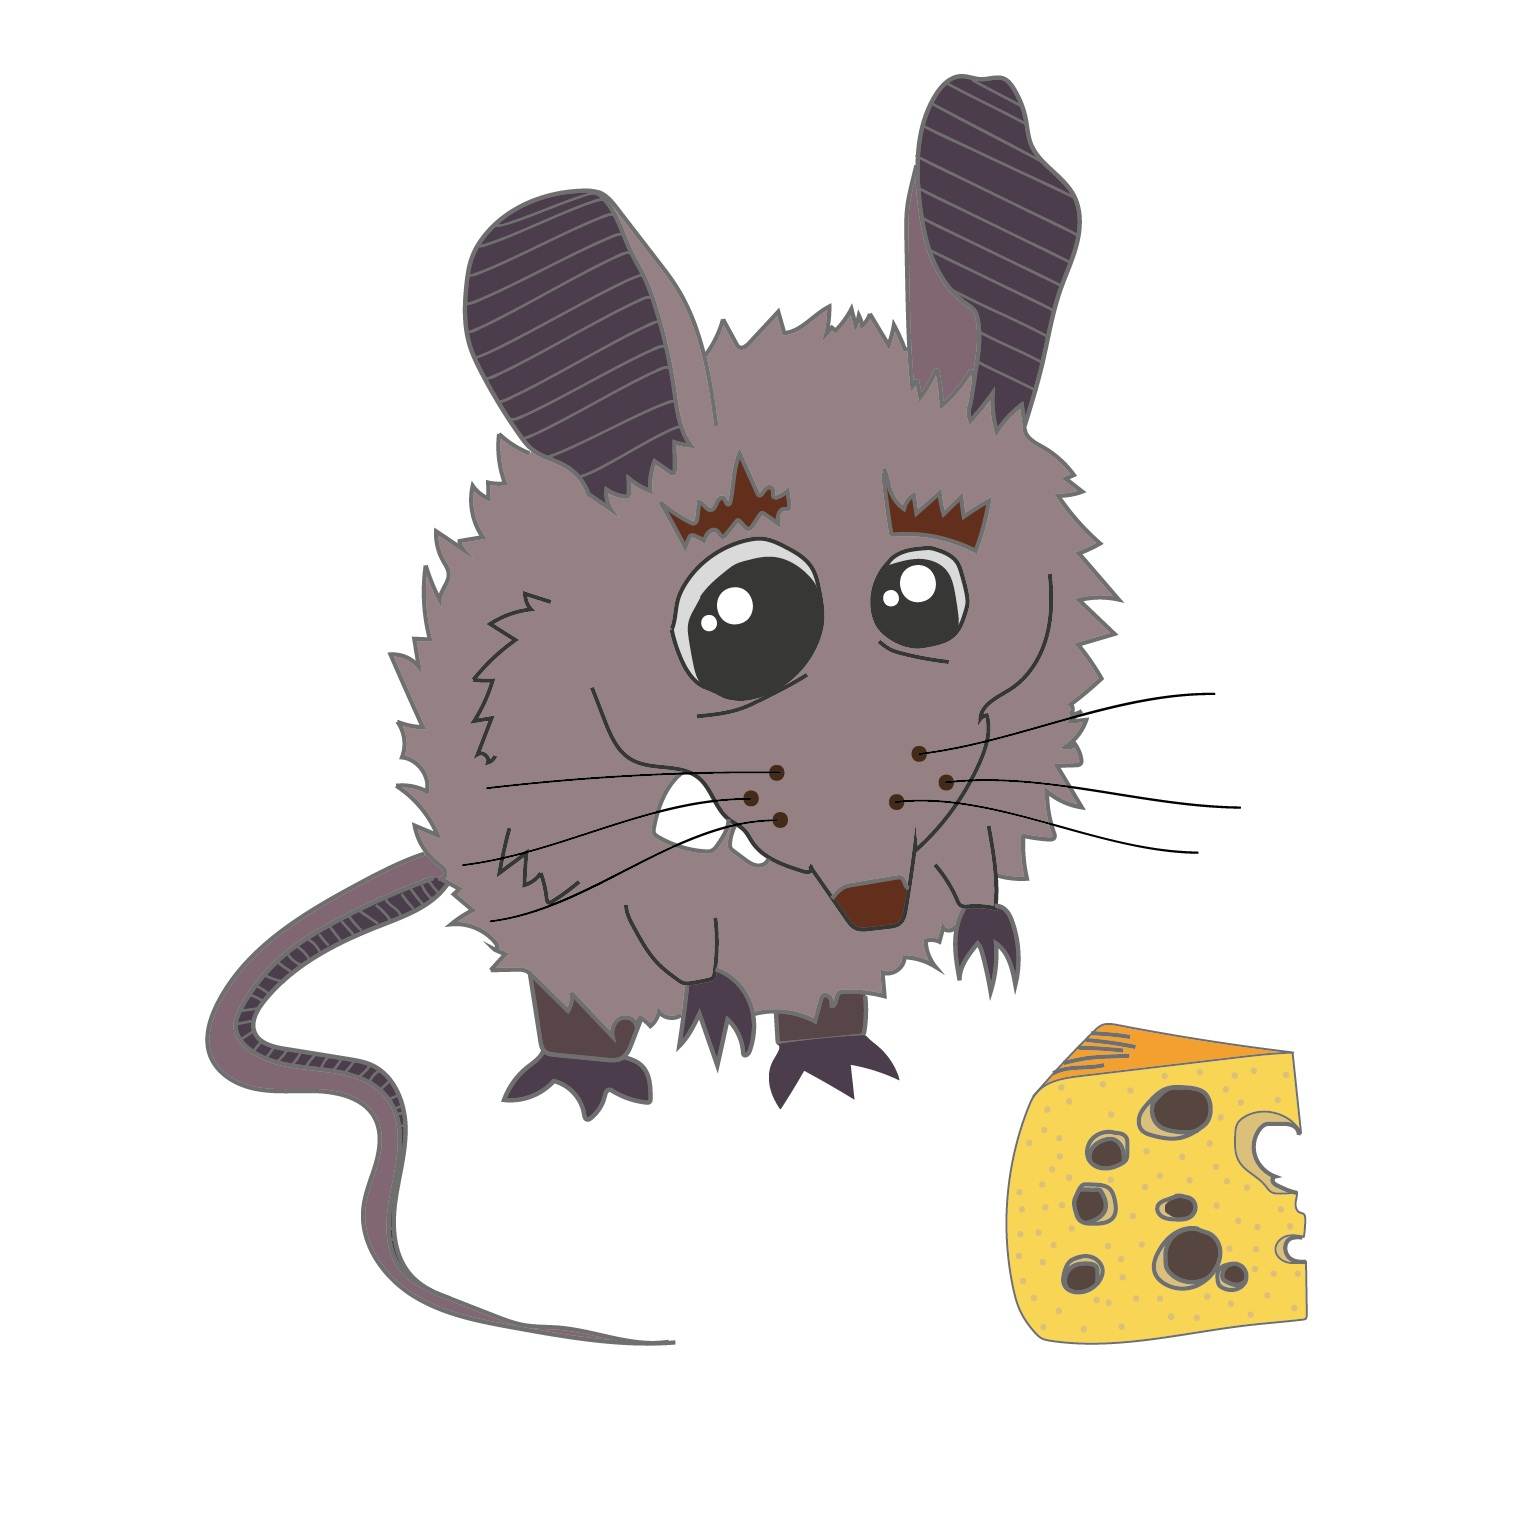 Bettina the Mouse  2016 Digital illustration 1190 px x 840 px  More information